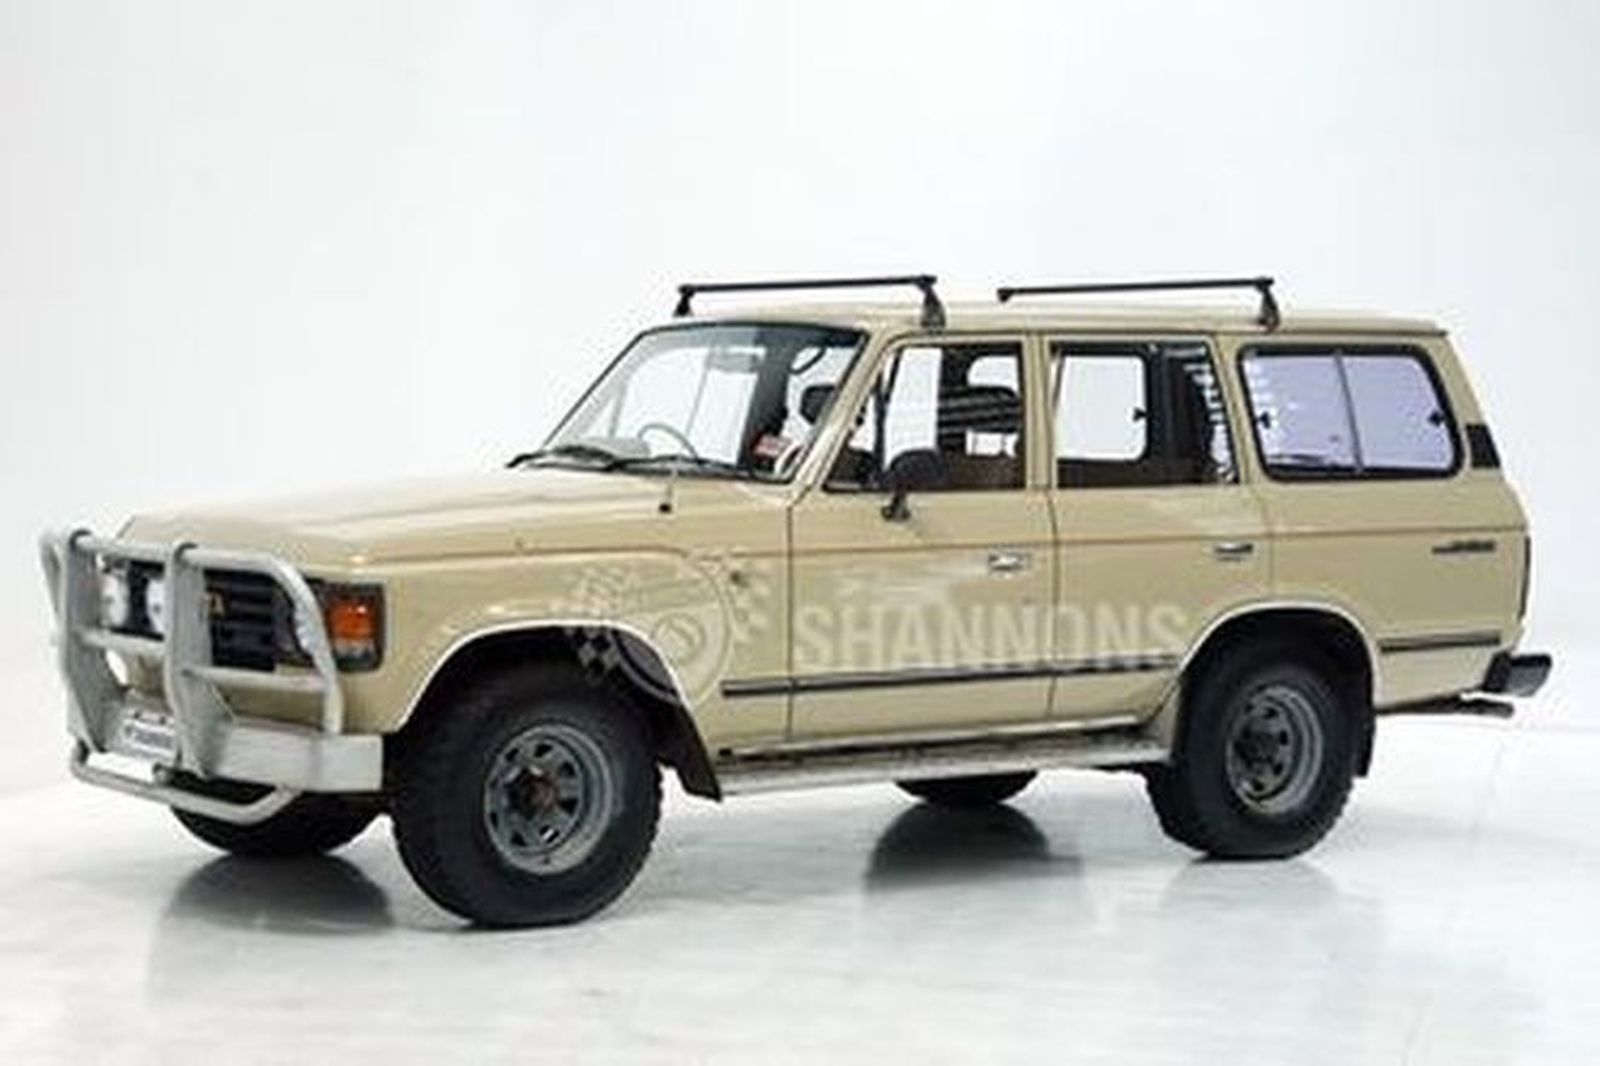 Toyota Land Cruiser HJ60 4L Diesel Wagon Auctions - Lot 5